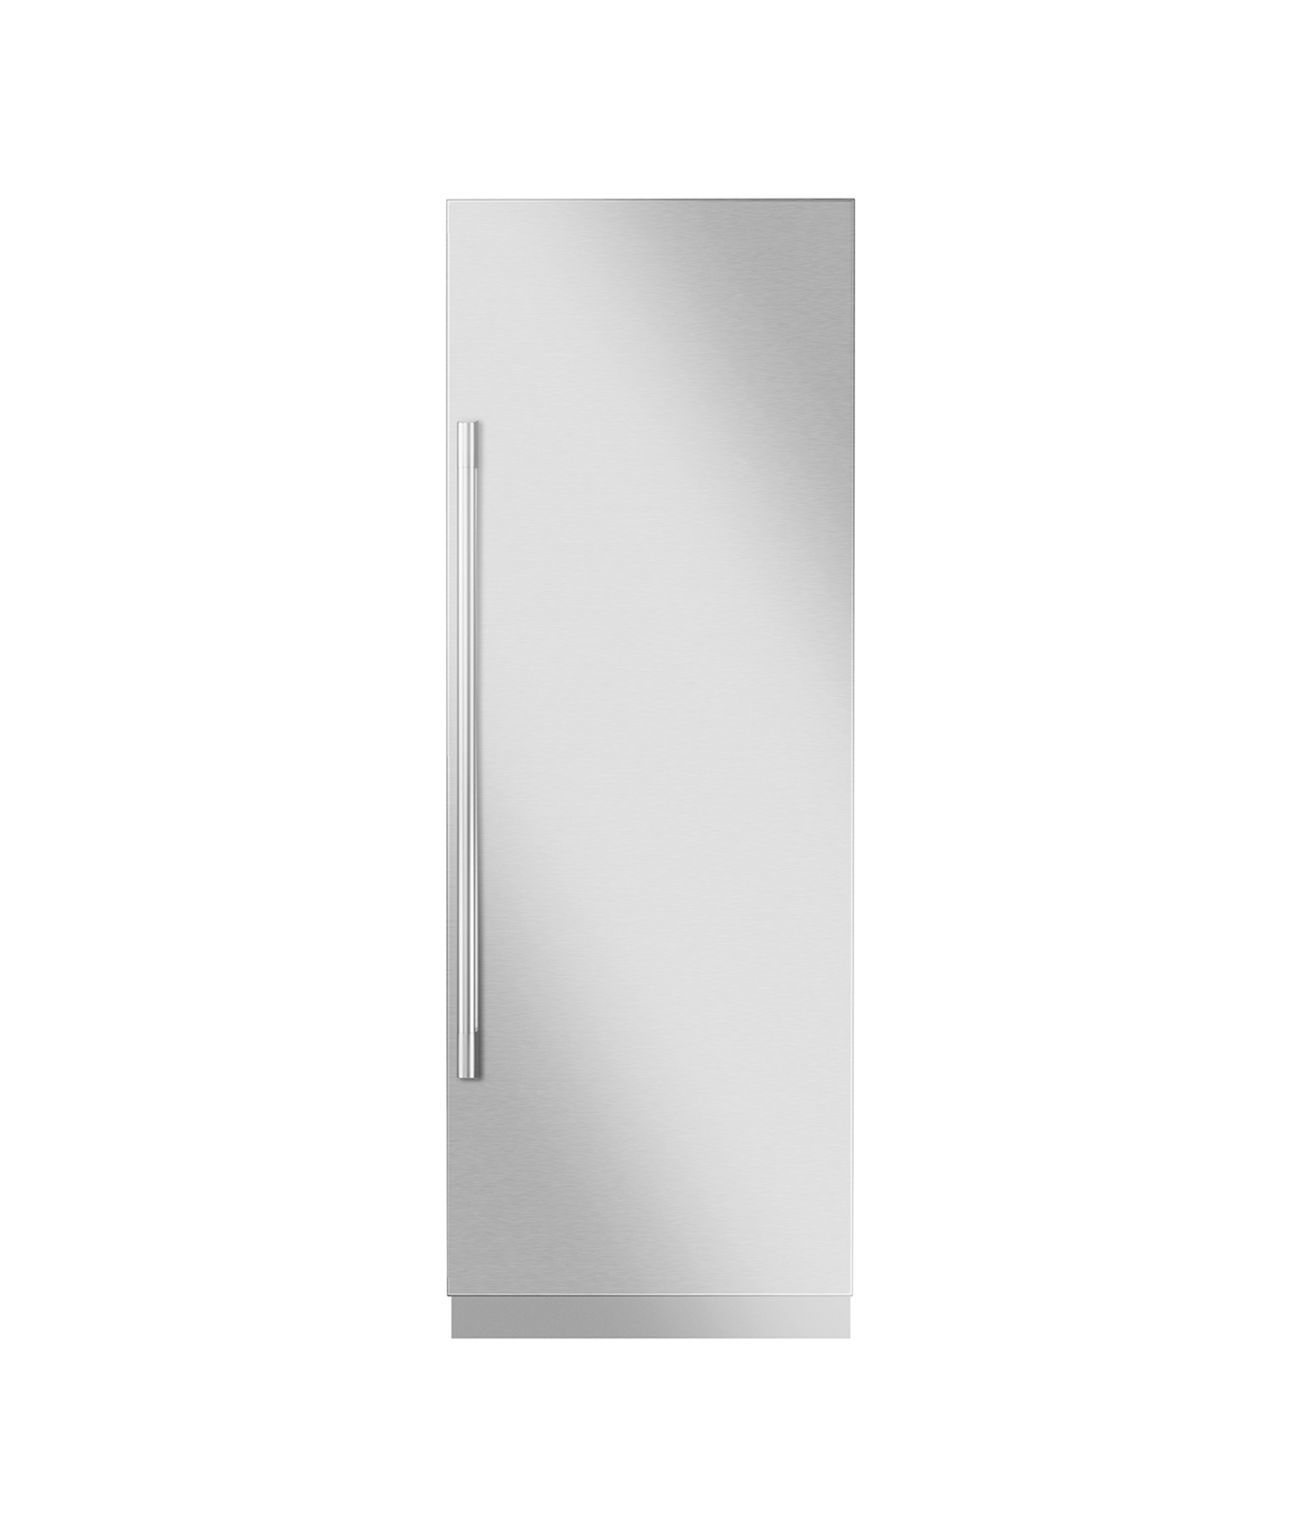 30-inch Integrated Refrigeration Column from Signature Kitchen Suite